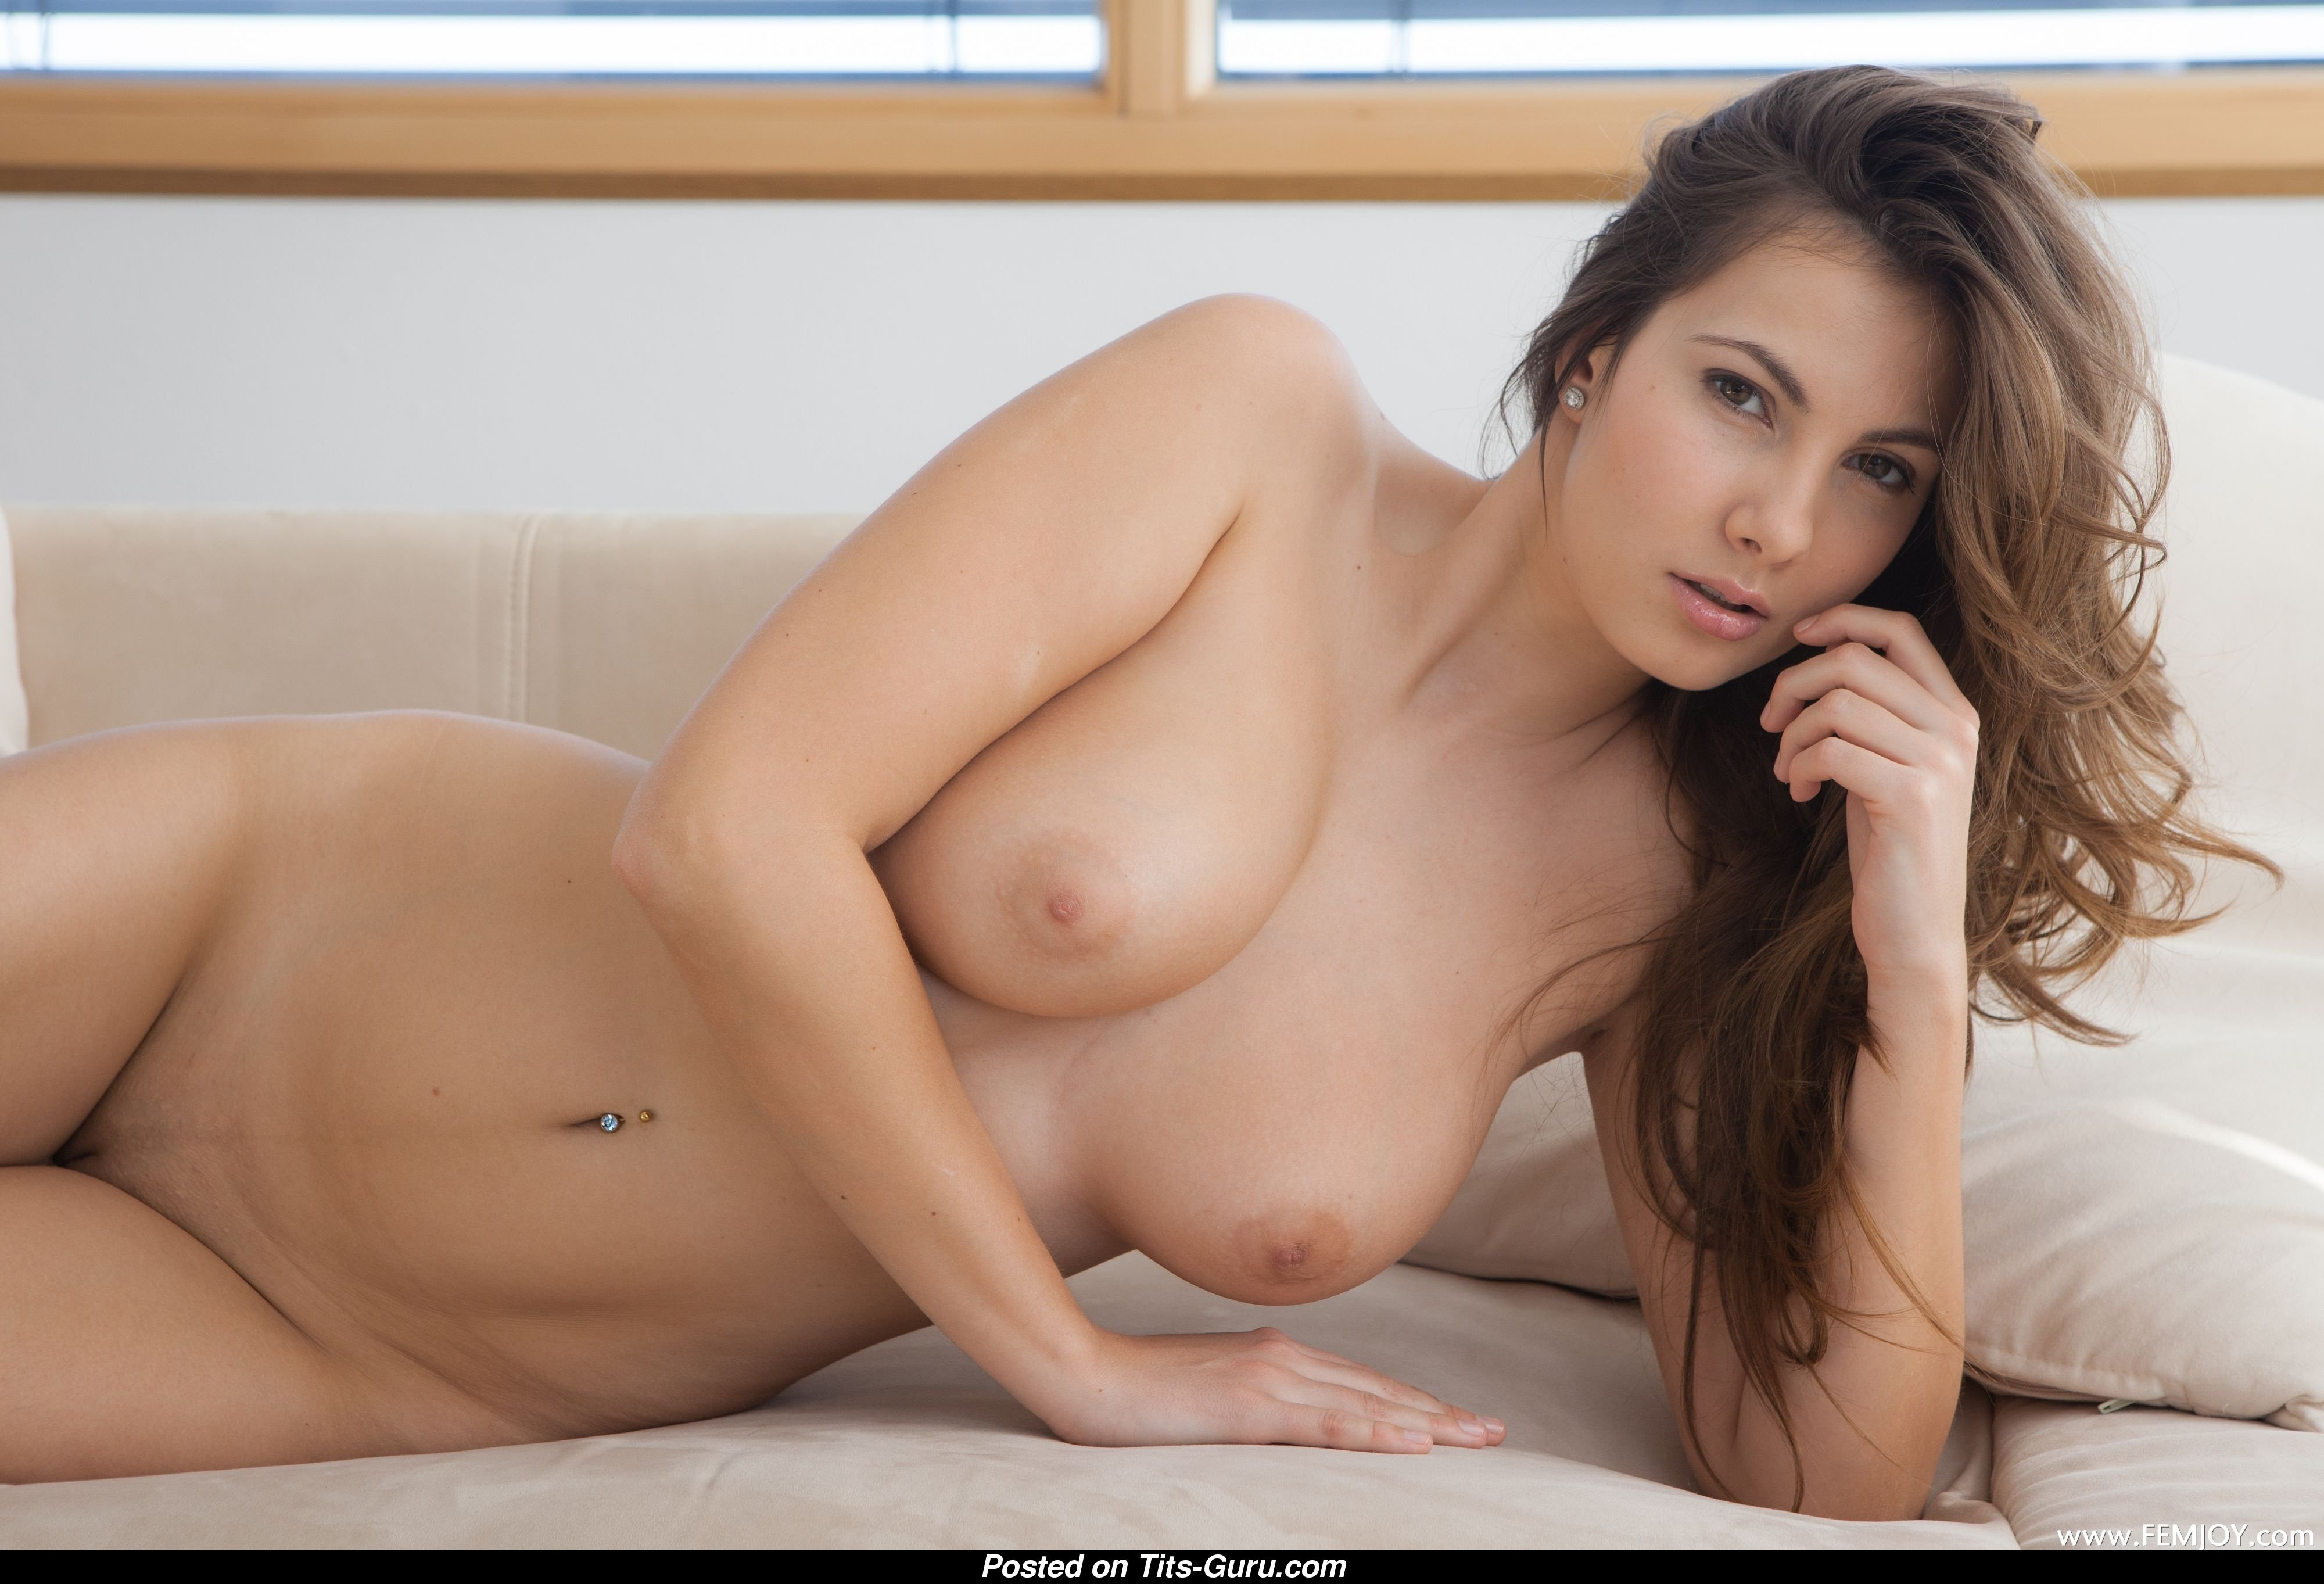 Connie Carter - Pornstar  Babe With Bare Natural Soft Tits  Piercing Porn Photo 26 -5301